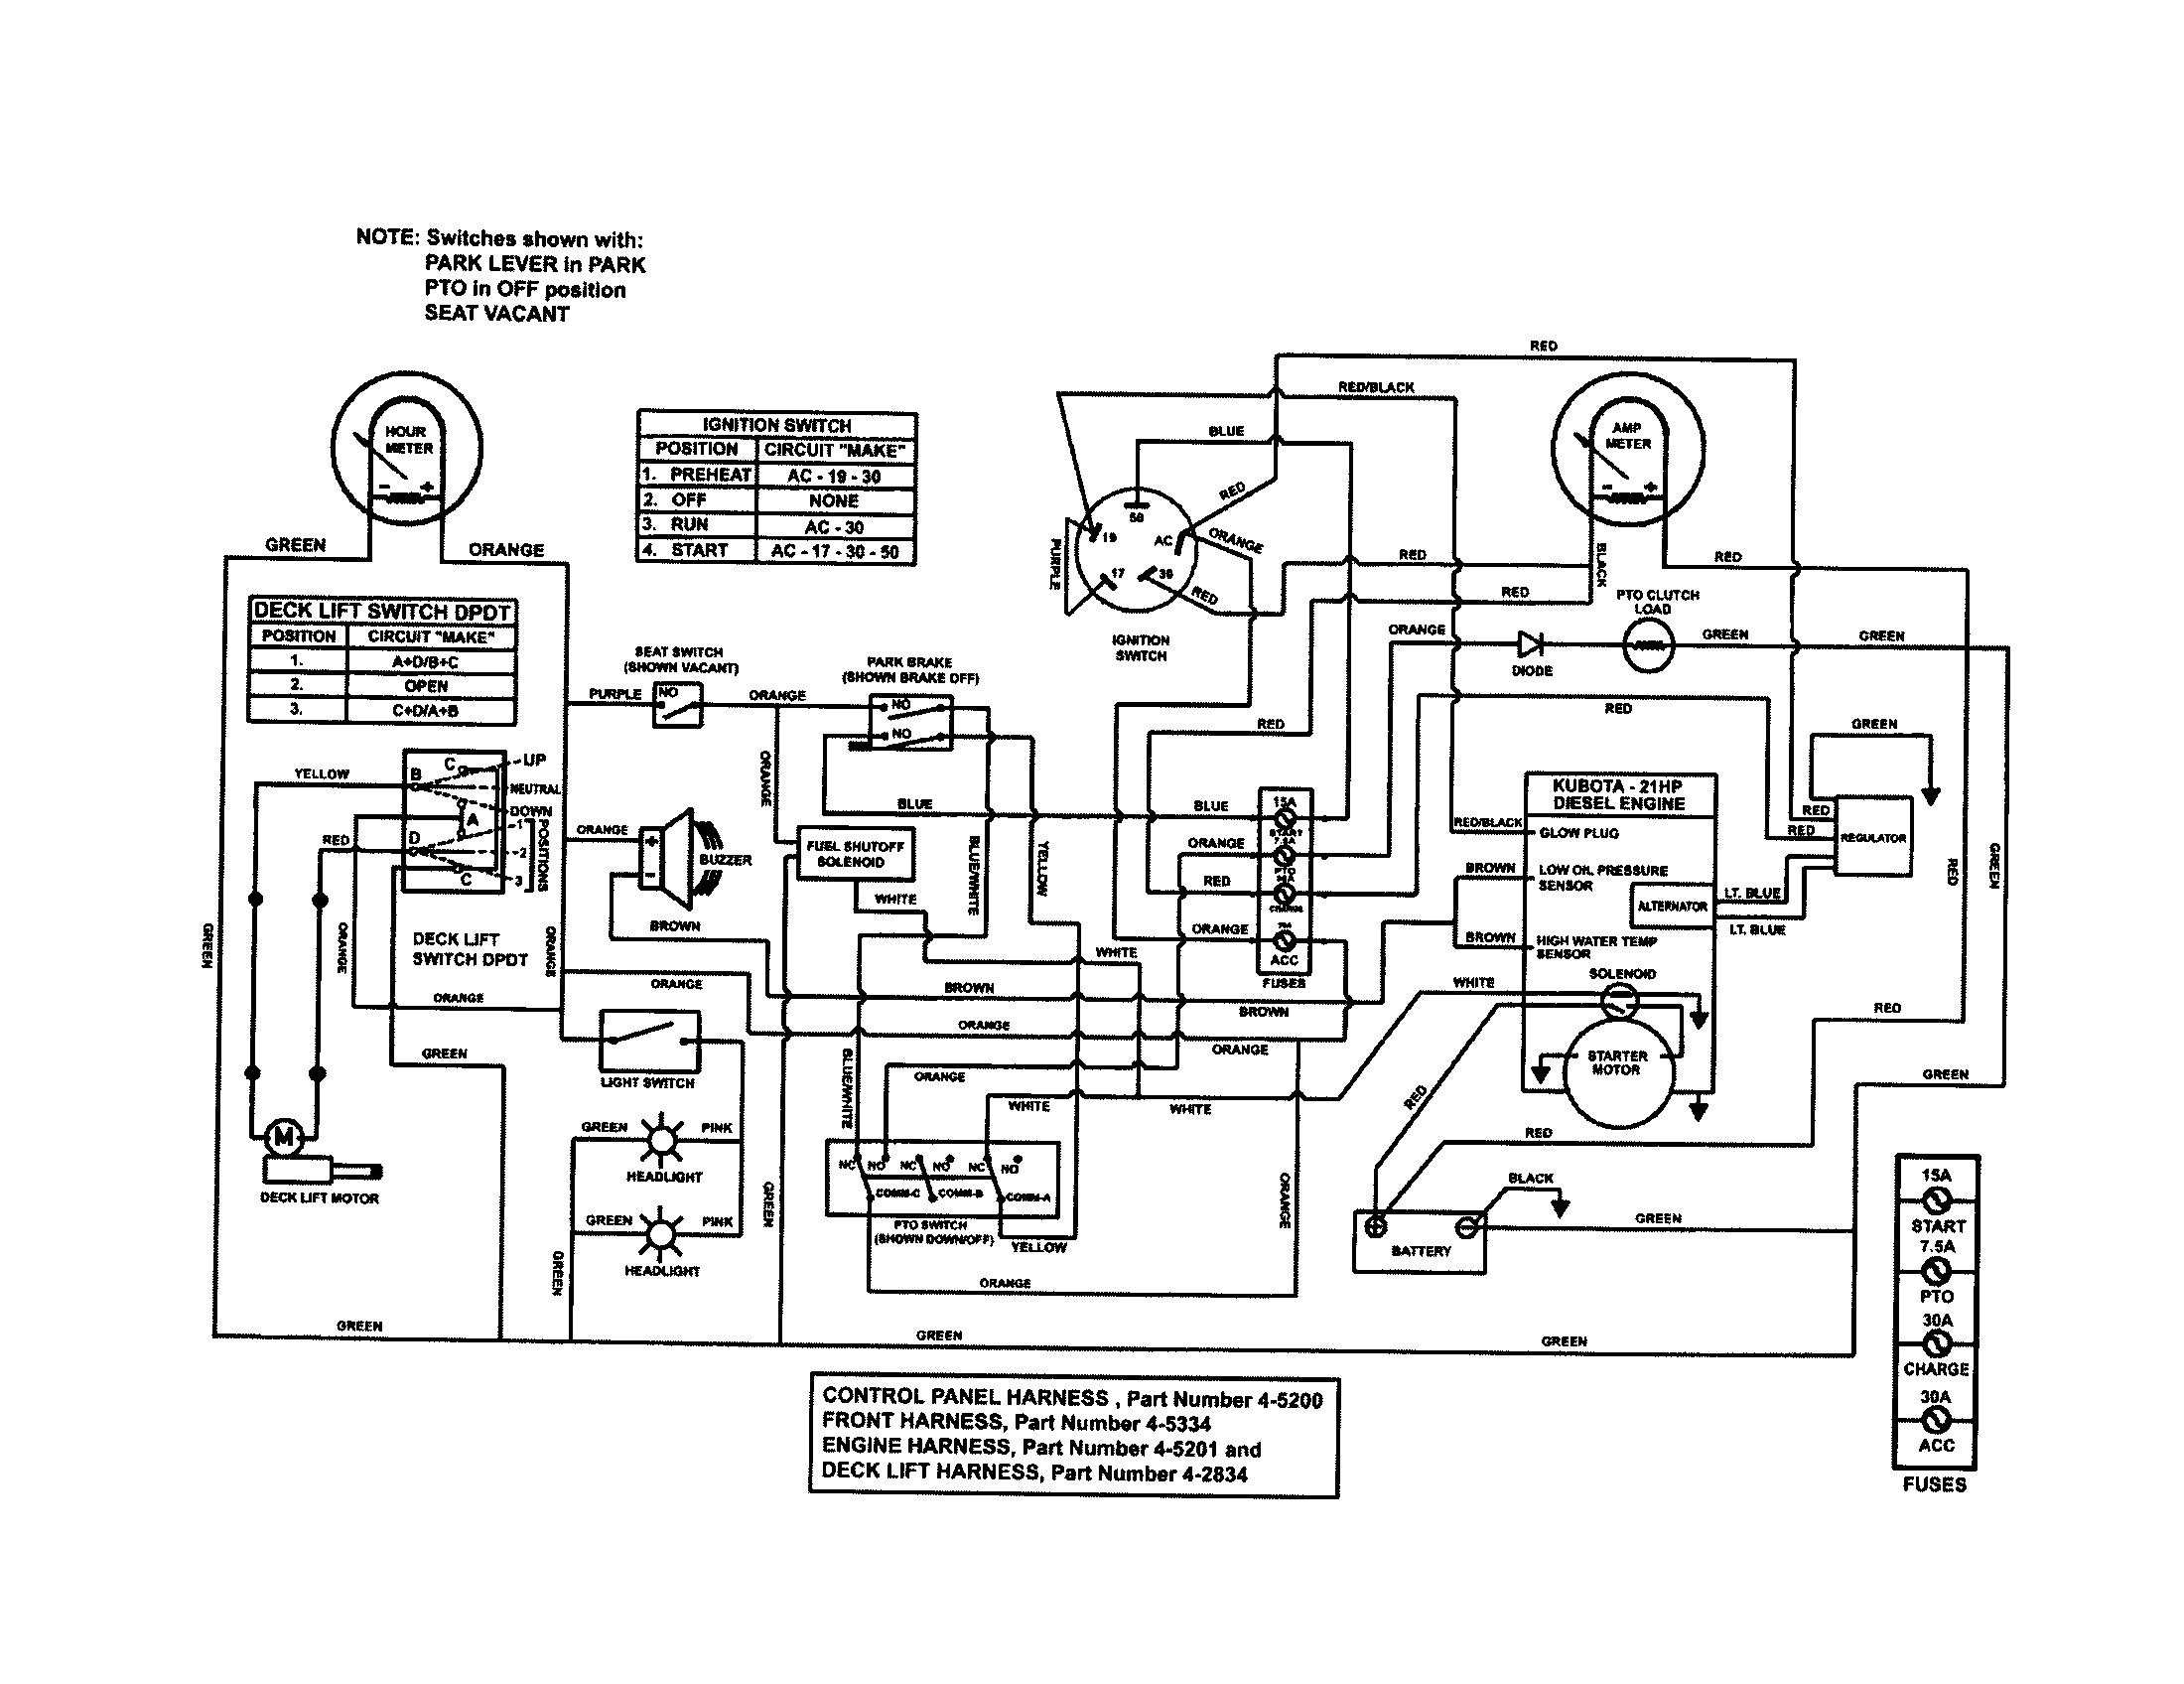 kubota rtv 500 engine diagram kubota rtv 500 engine